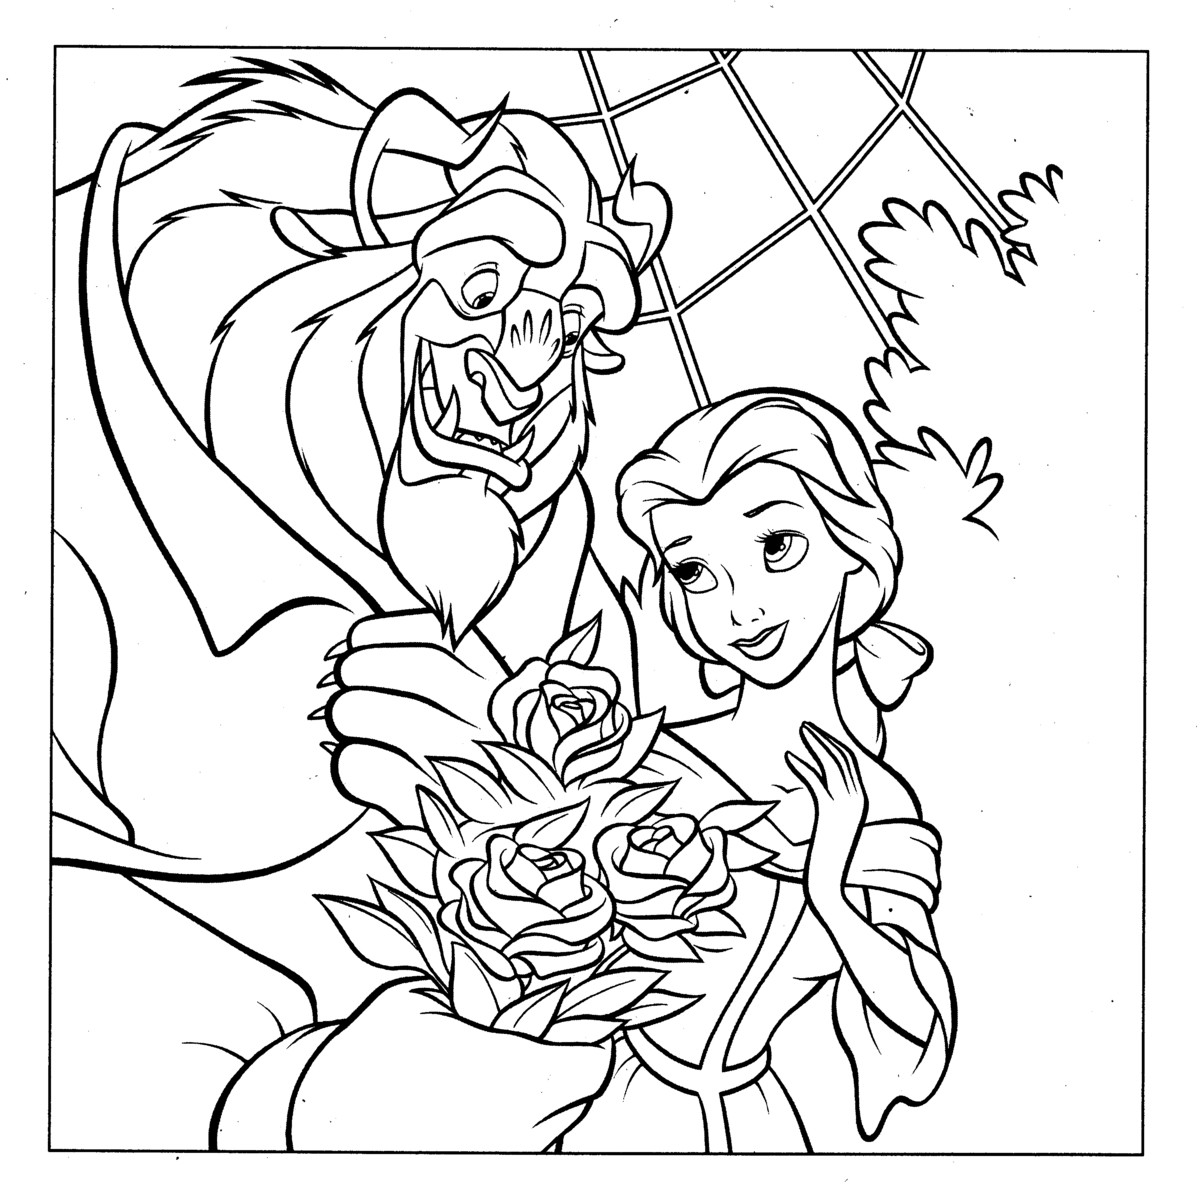 Disney Princess Coloring Pages 66 Free Printable Coloring Pages